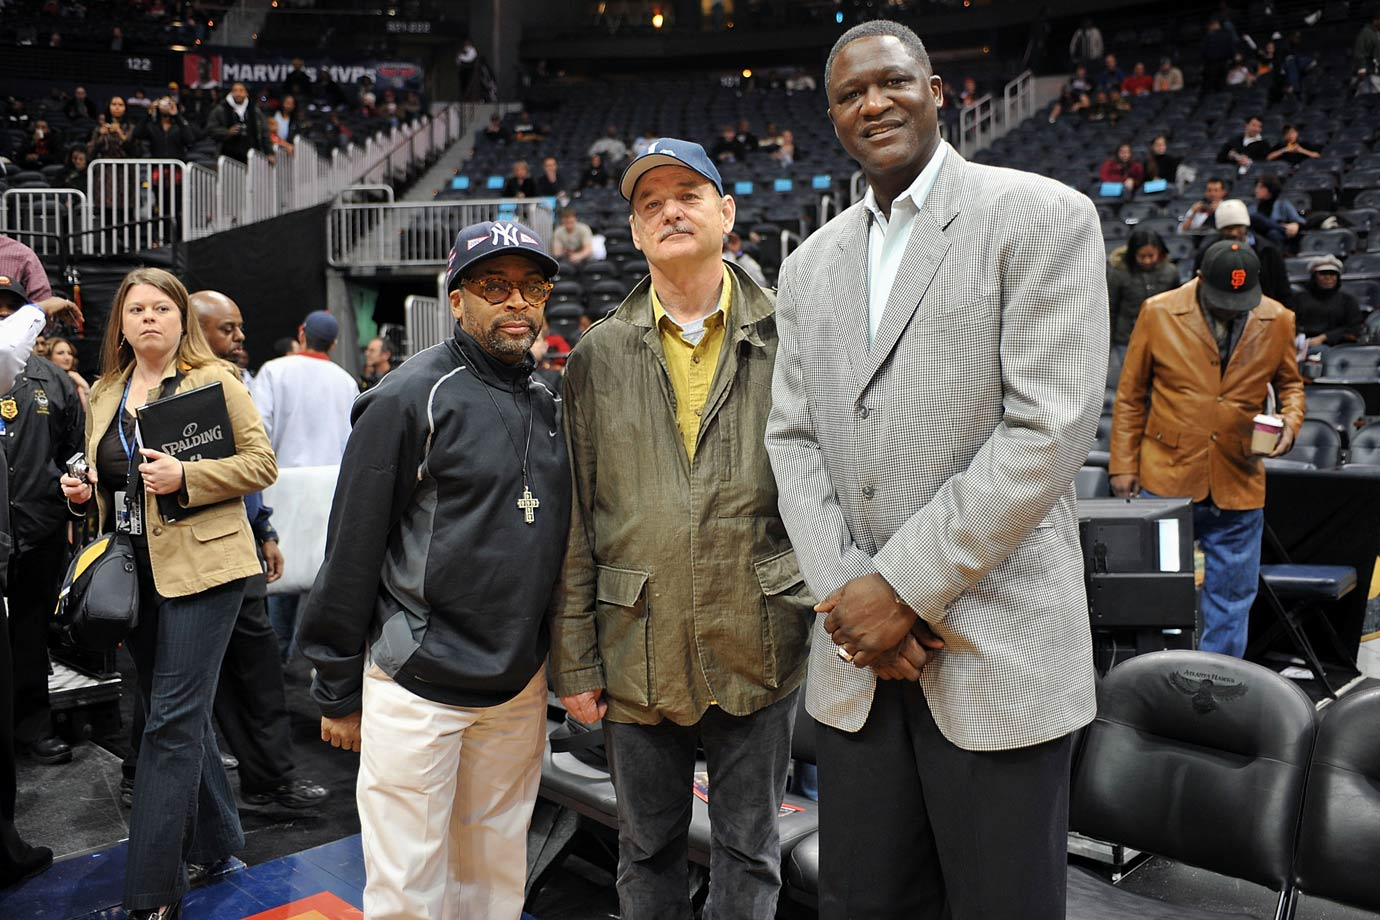 Spike Lee, Bill Murray and Dominique Wilkins pose together during the Atlanta Hawks game against the Cleveland Cavaliers on March 1, 2009 at Philips Arena in Atlanta.